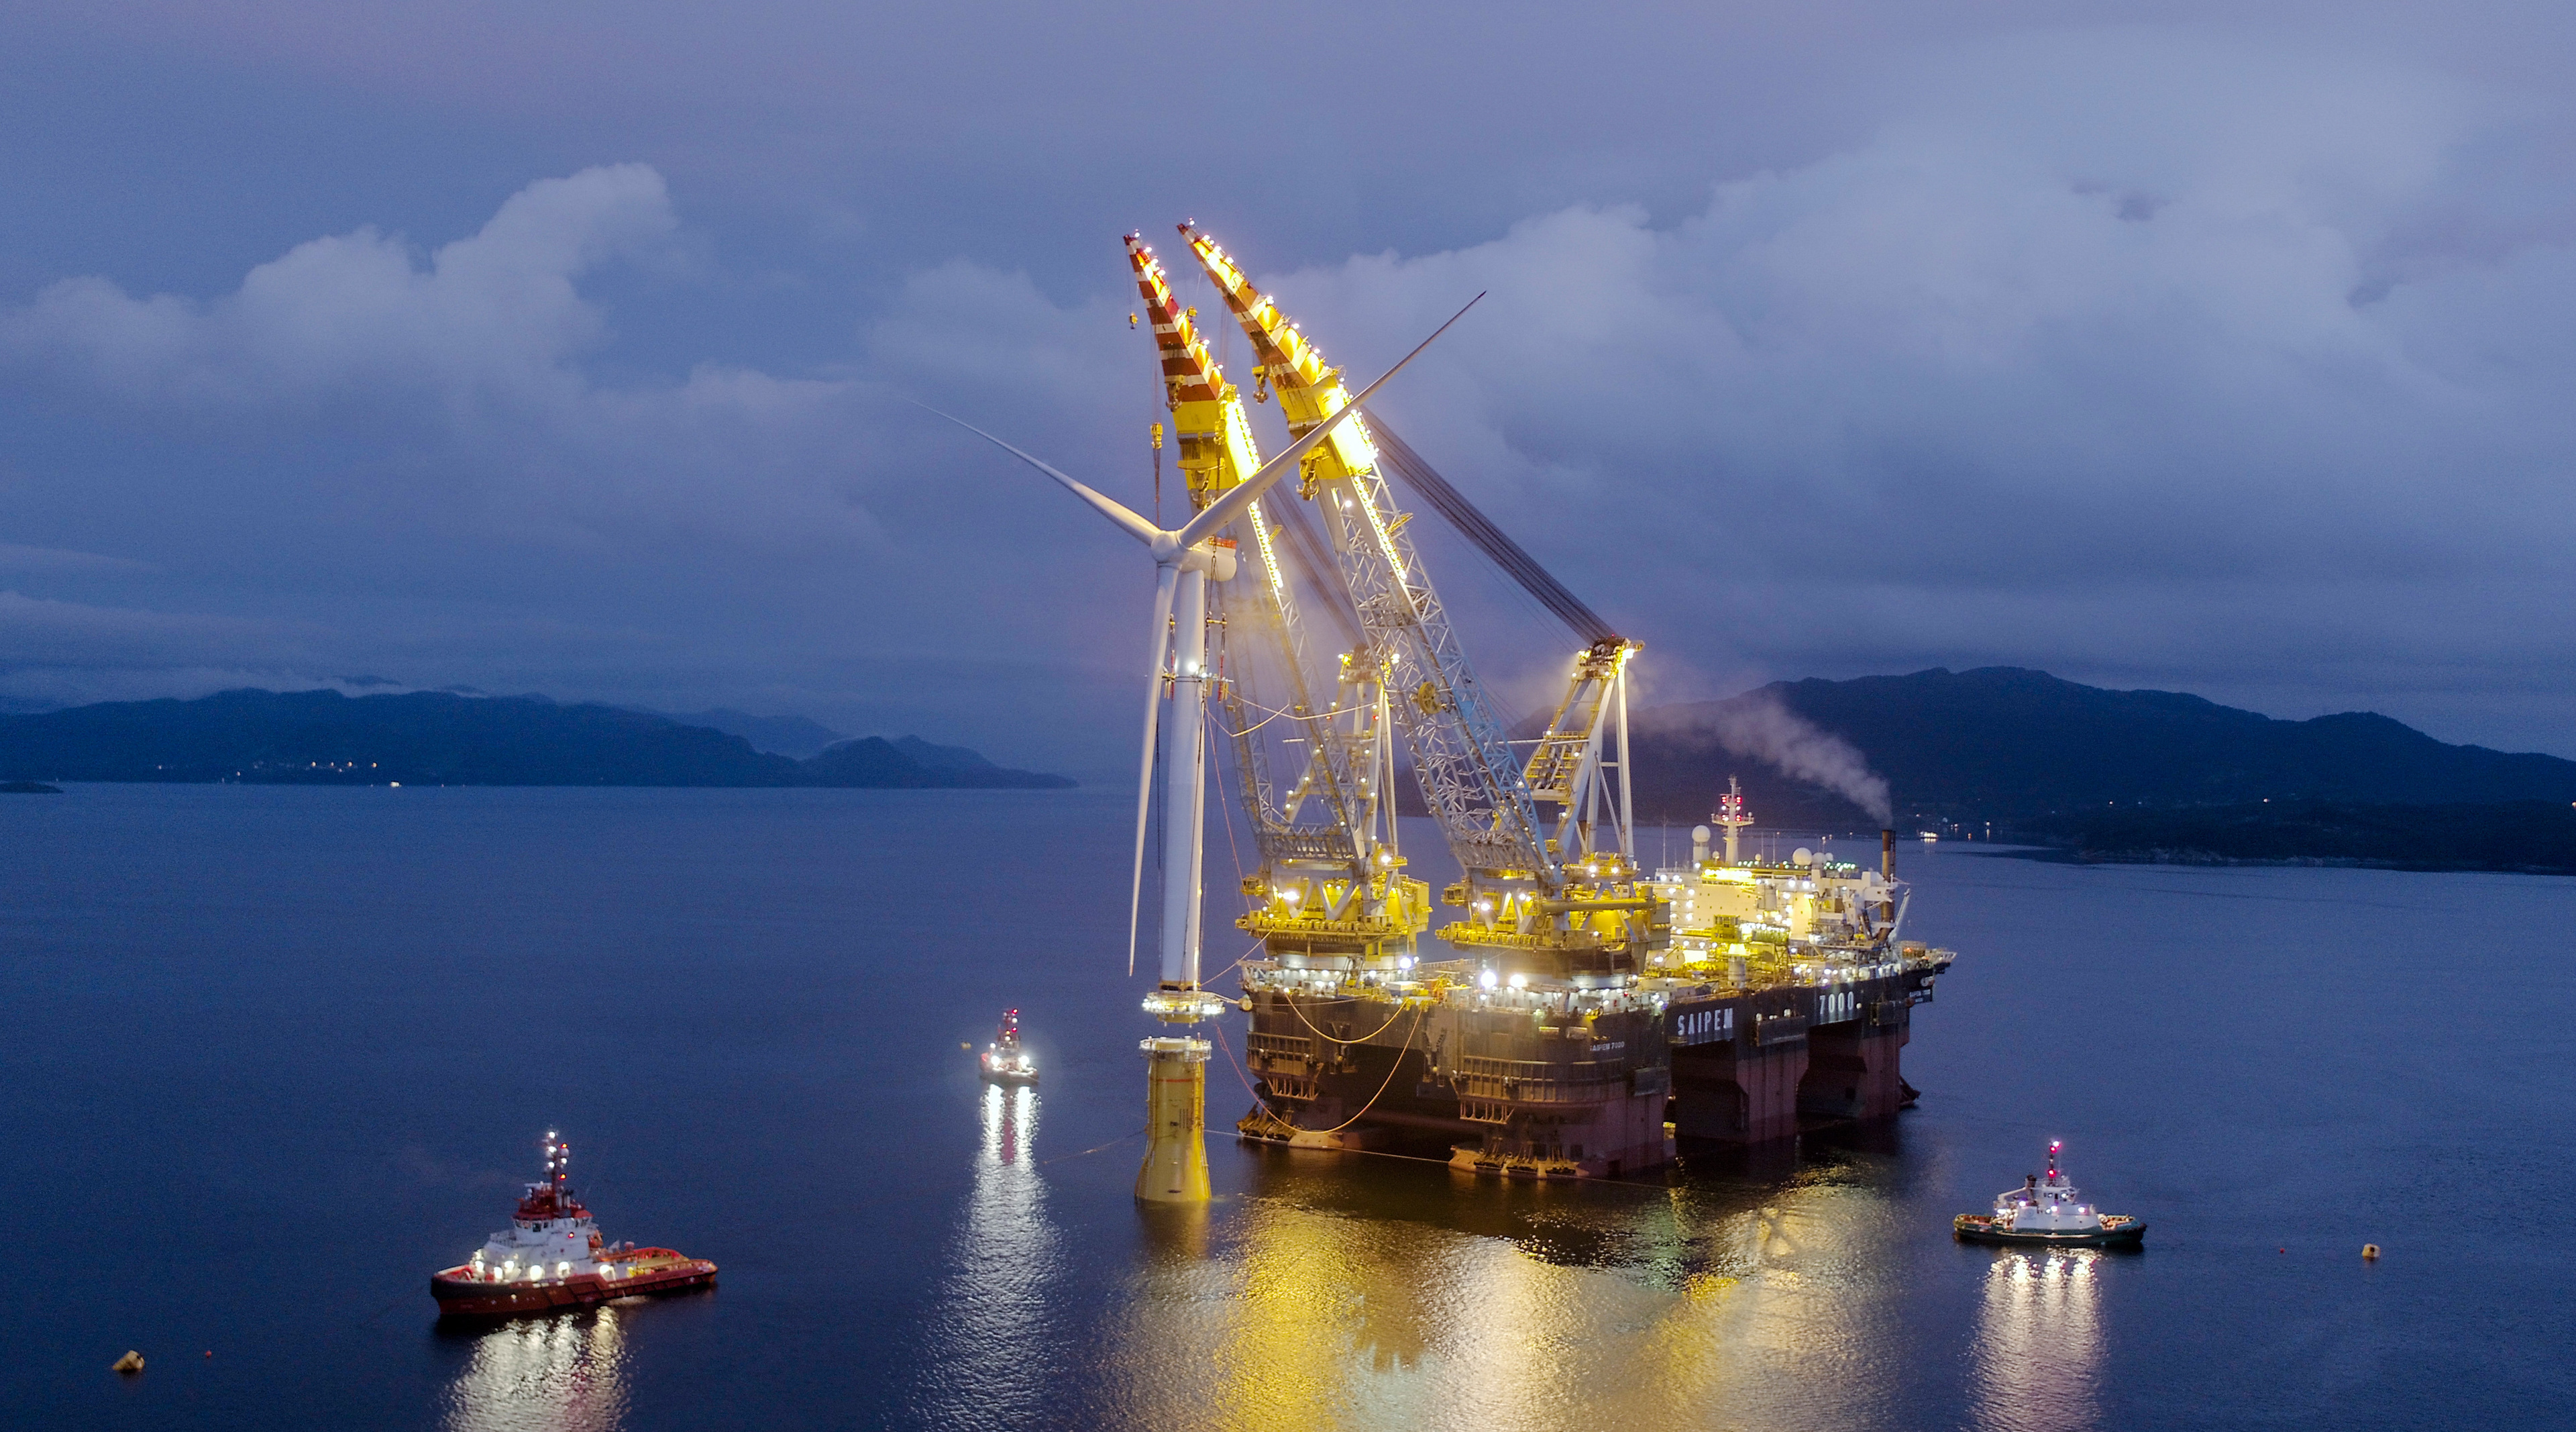 The Saipem 7000 lifting the Hywind turbine towers into their floating foundations